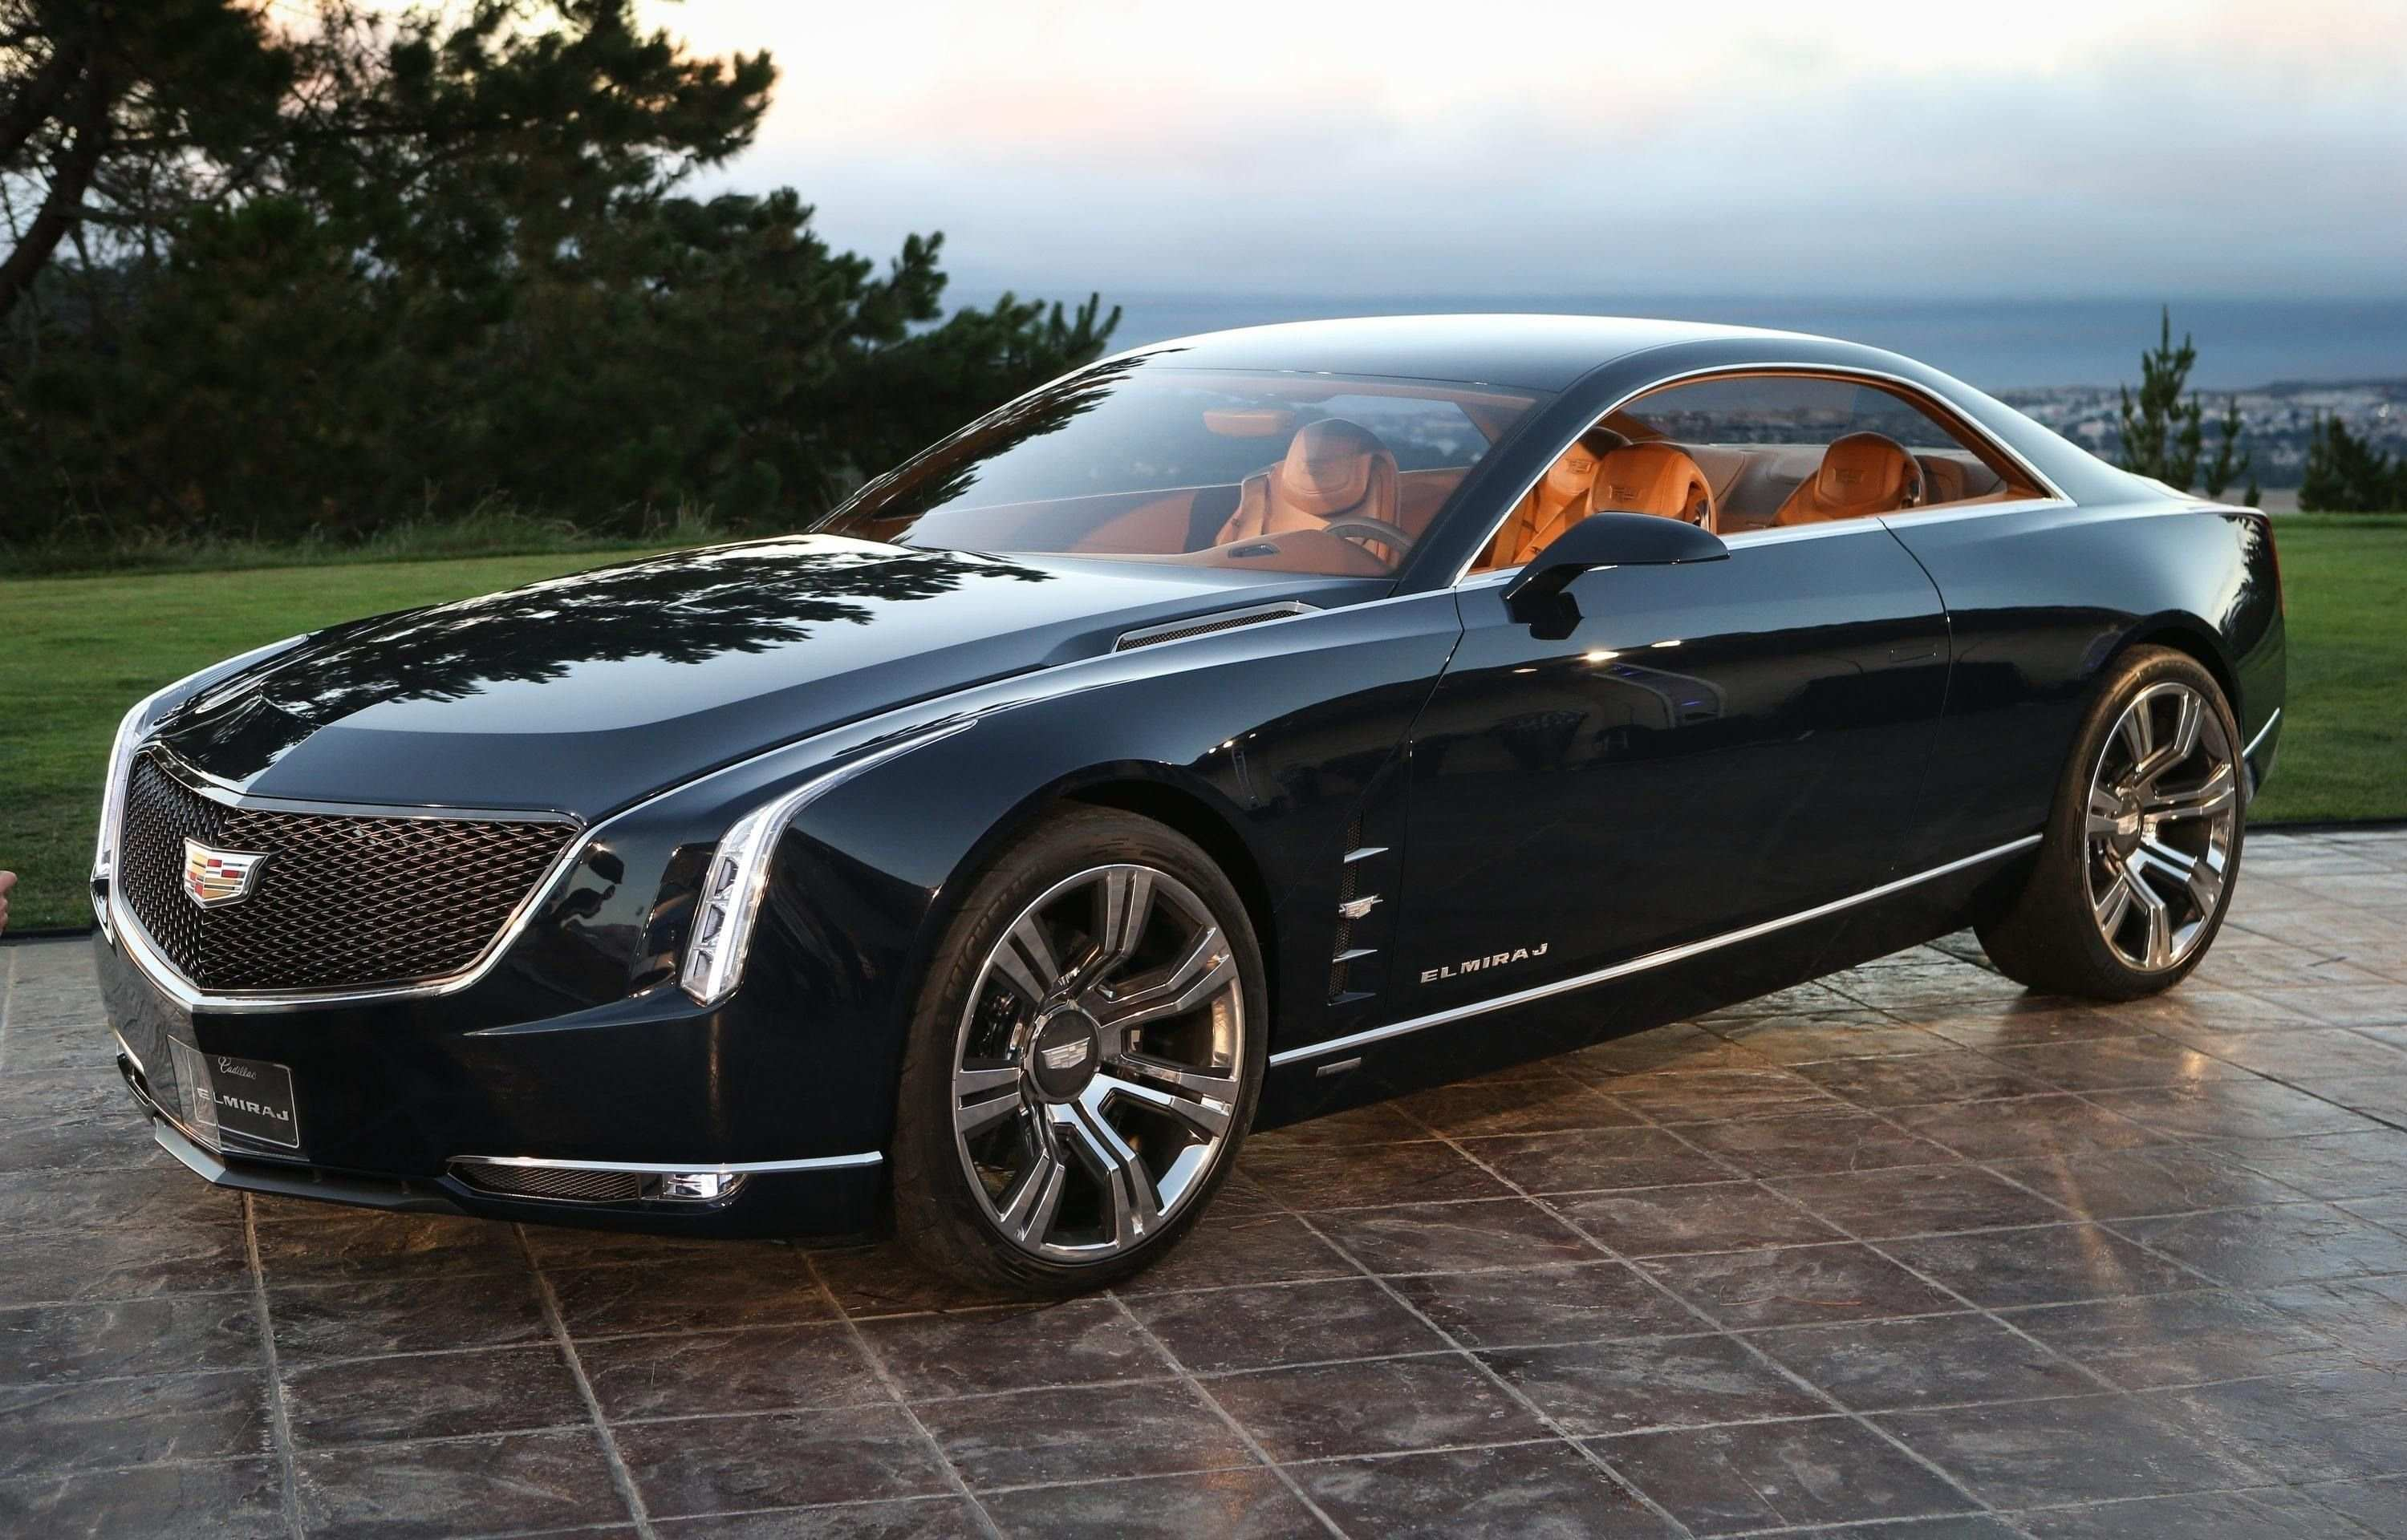 20 Concept of The Cadillac Deville 2019 New Concept Rumors for The Cadillac Deville 2019 New Concept